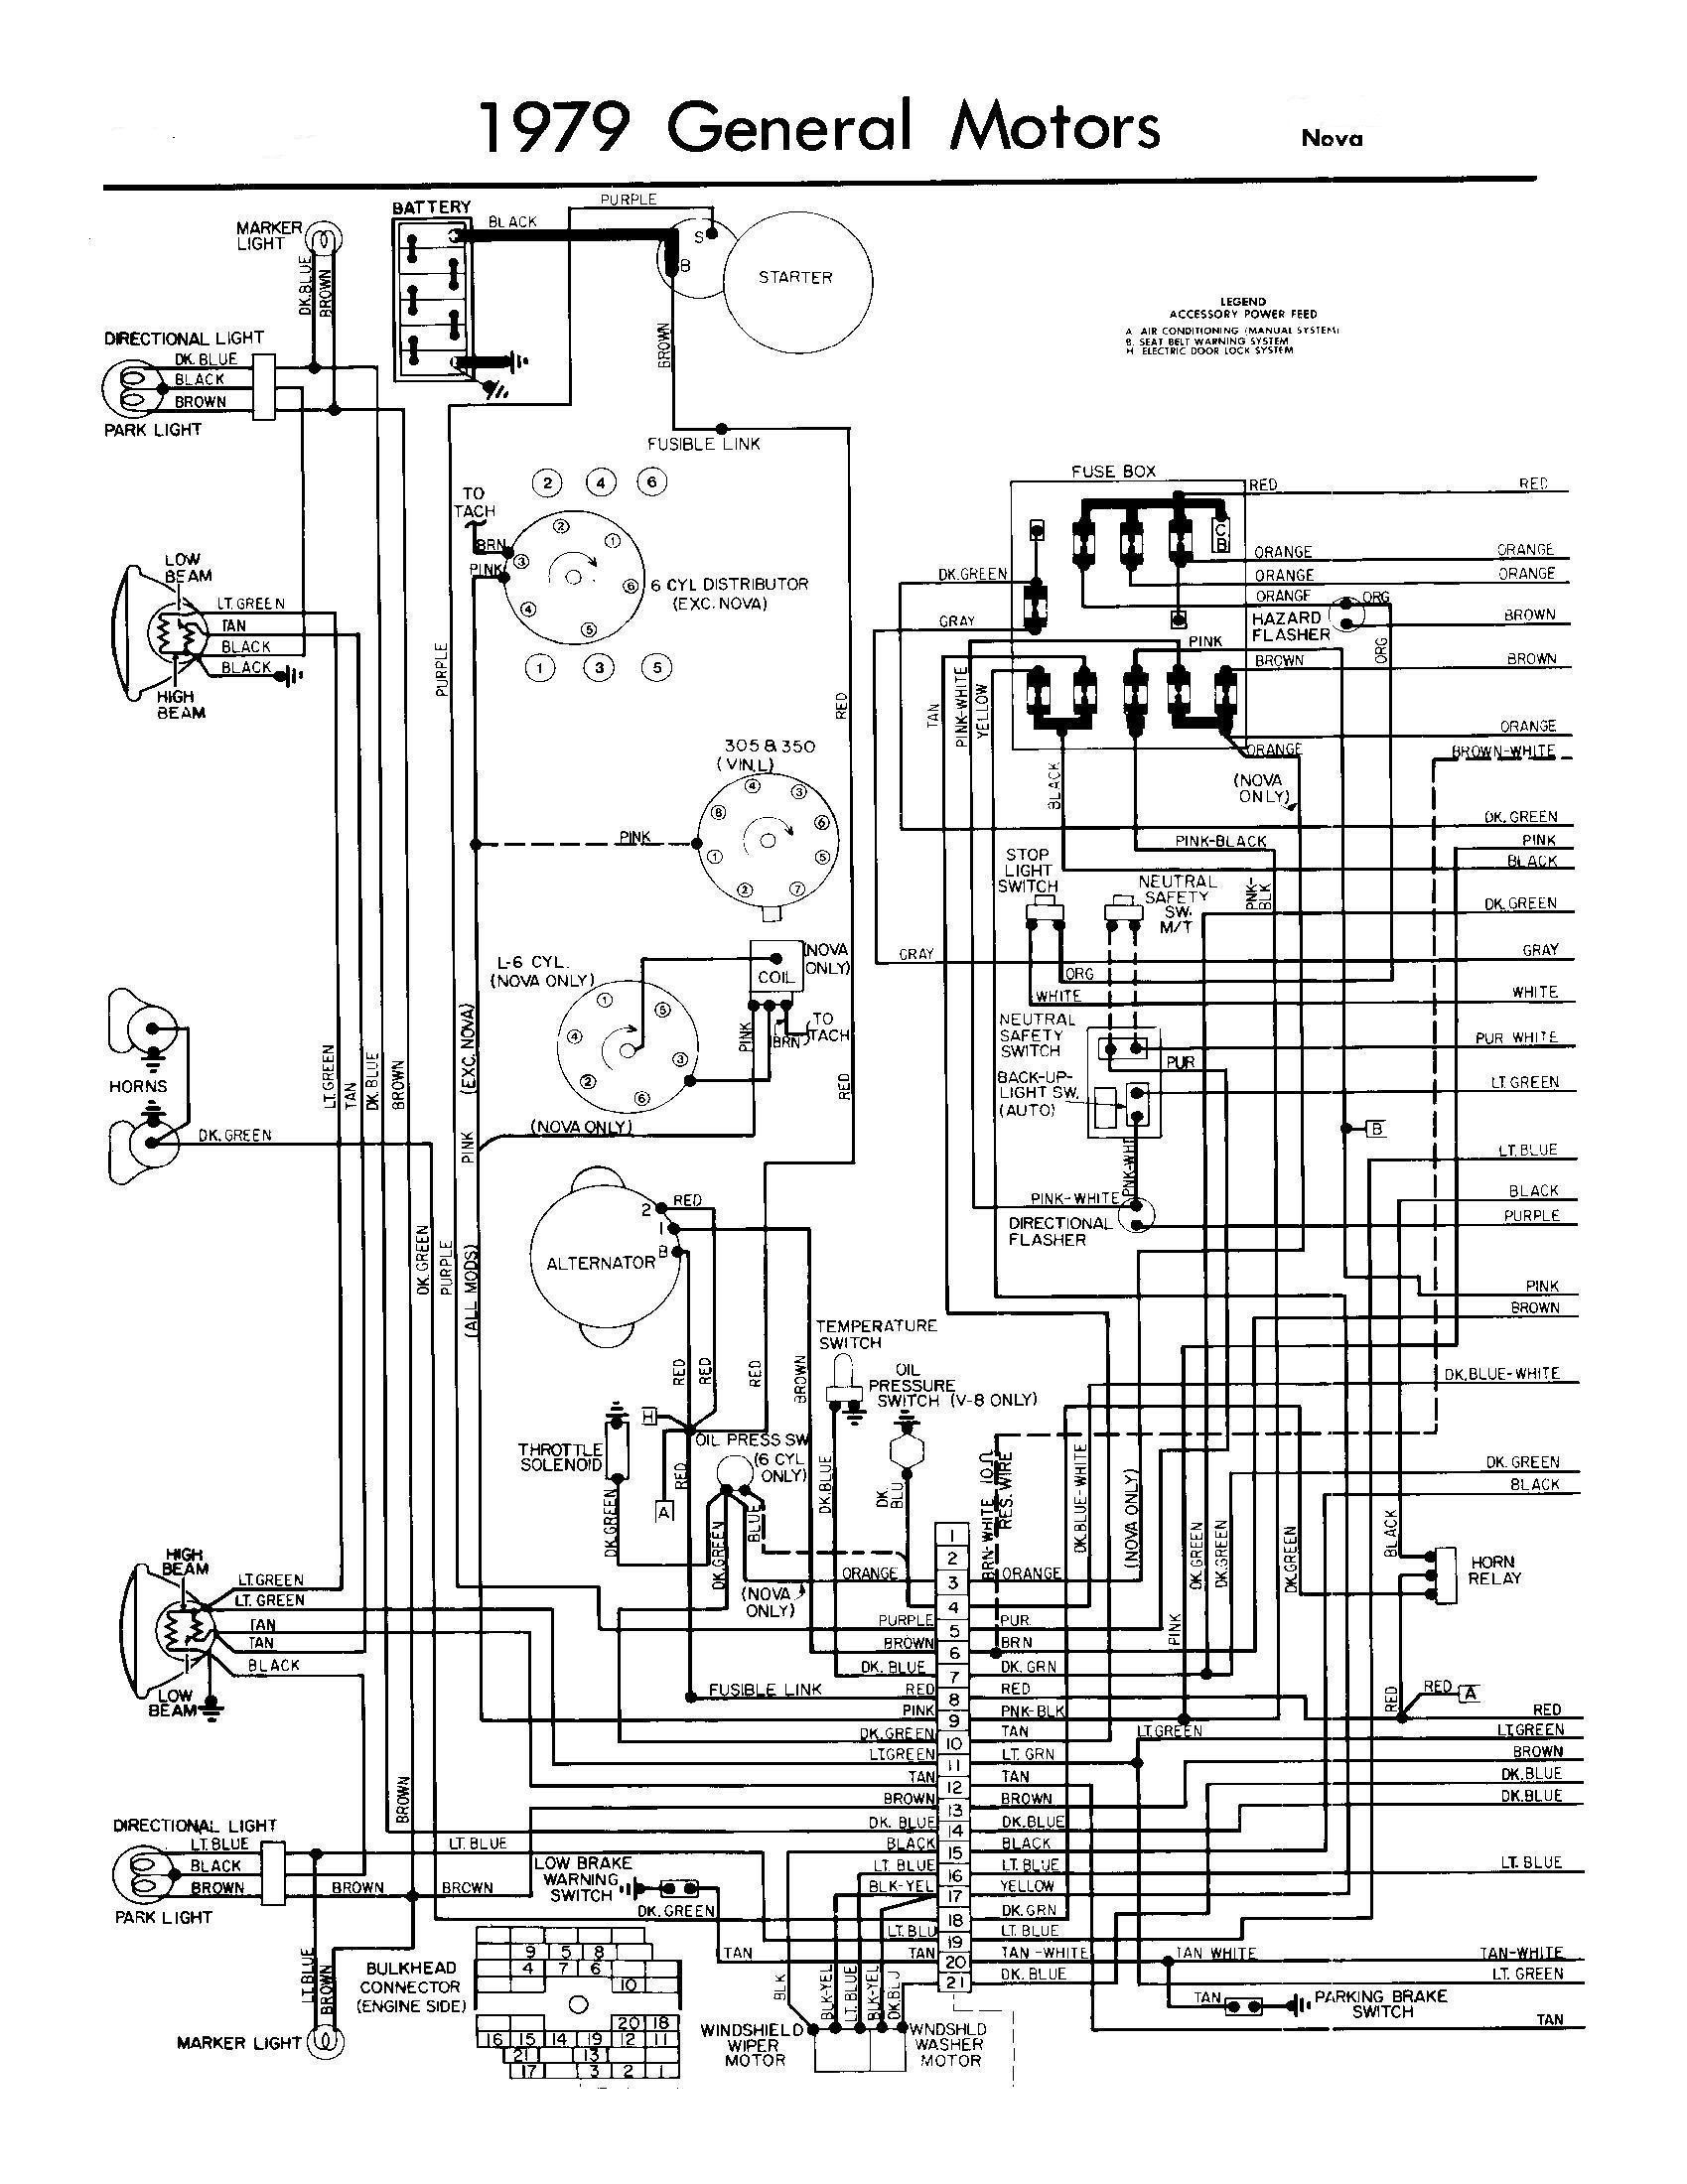 Vauxhall Nova Wiring Diagram Smart Diagrams Vivaro Radio Schematics 68 Chevy Truck Headlight Switch Free Download Rh Efluencia Co 1974